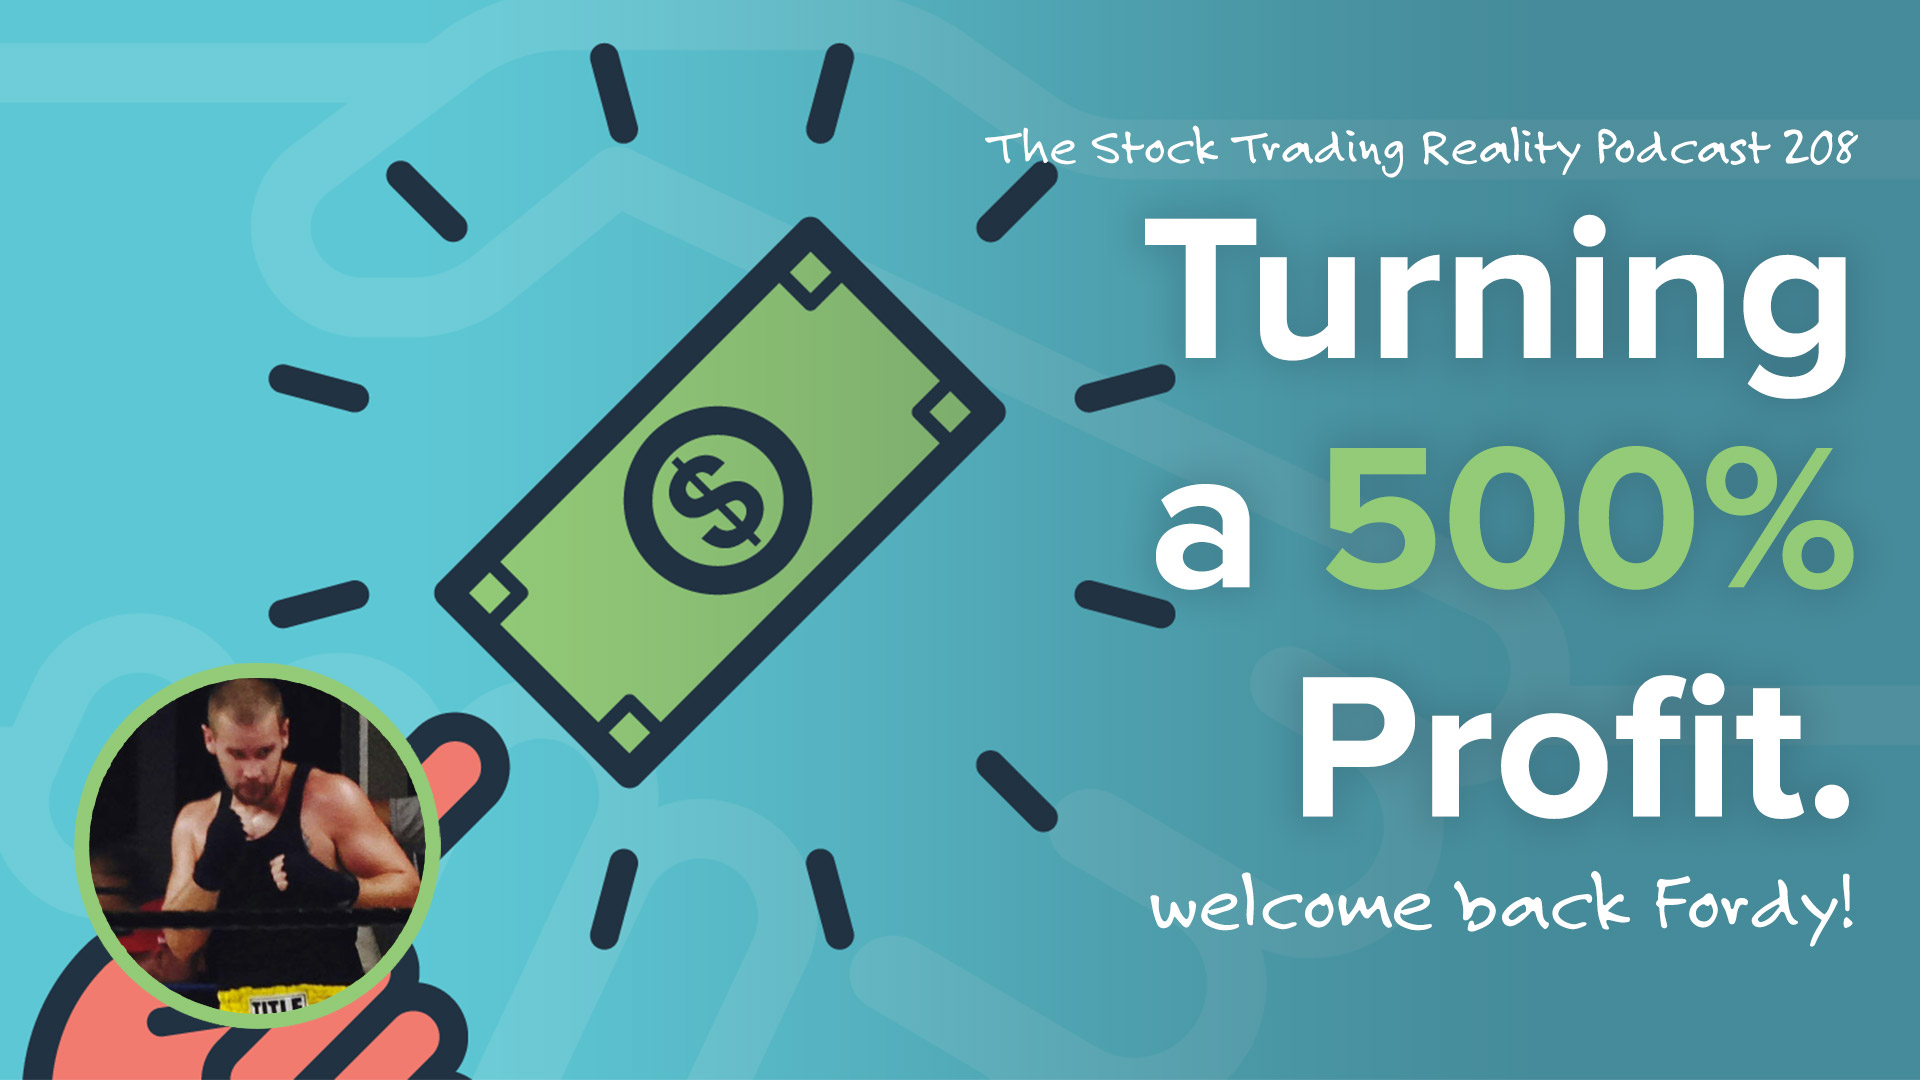 STR 208: Turning a 500% Profit. Welcome Back Fordy!